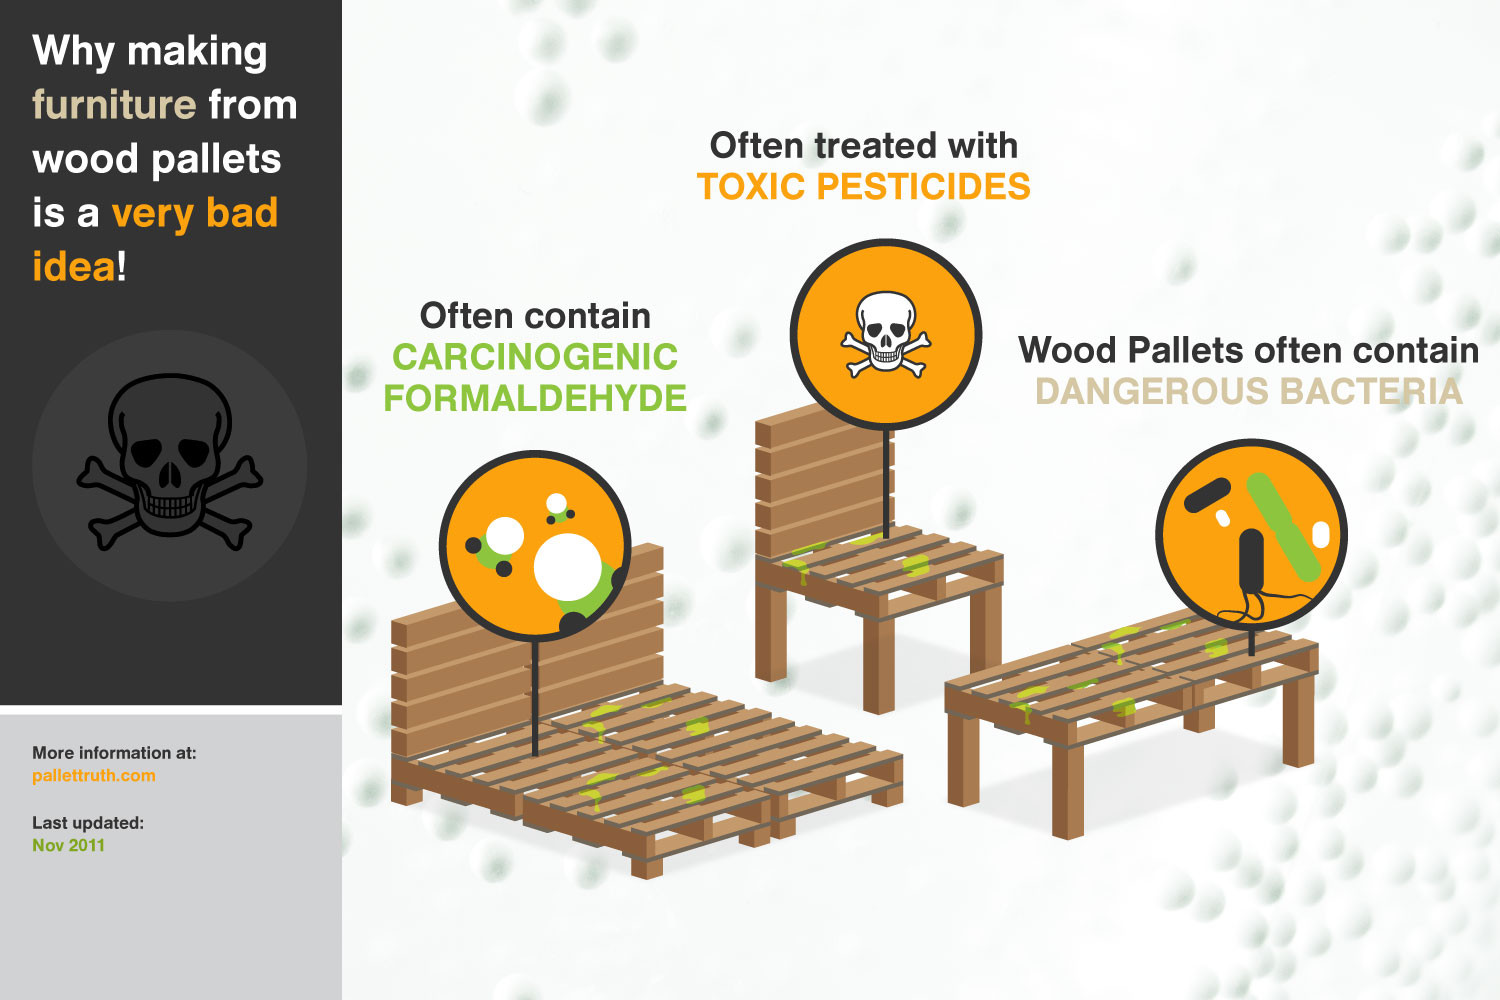 Why is making furniture from wood wallets so dangerous? Infographic